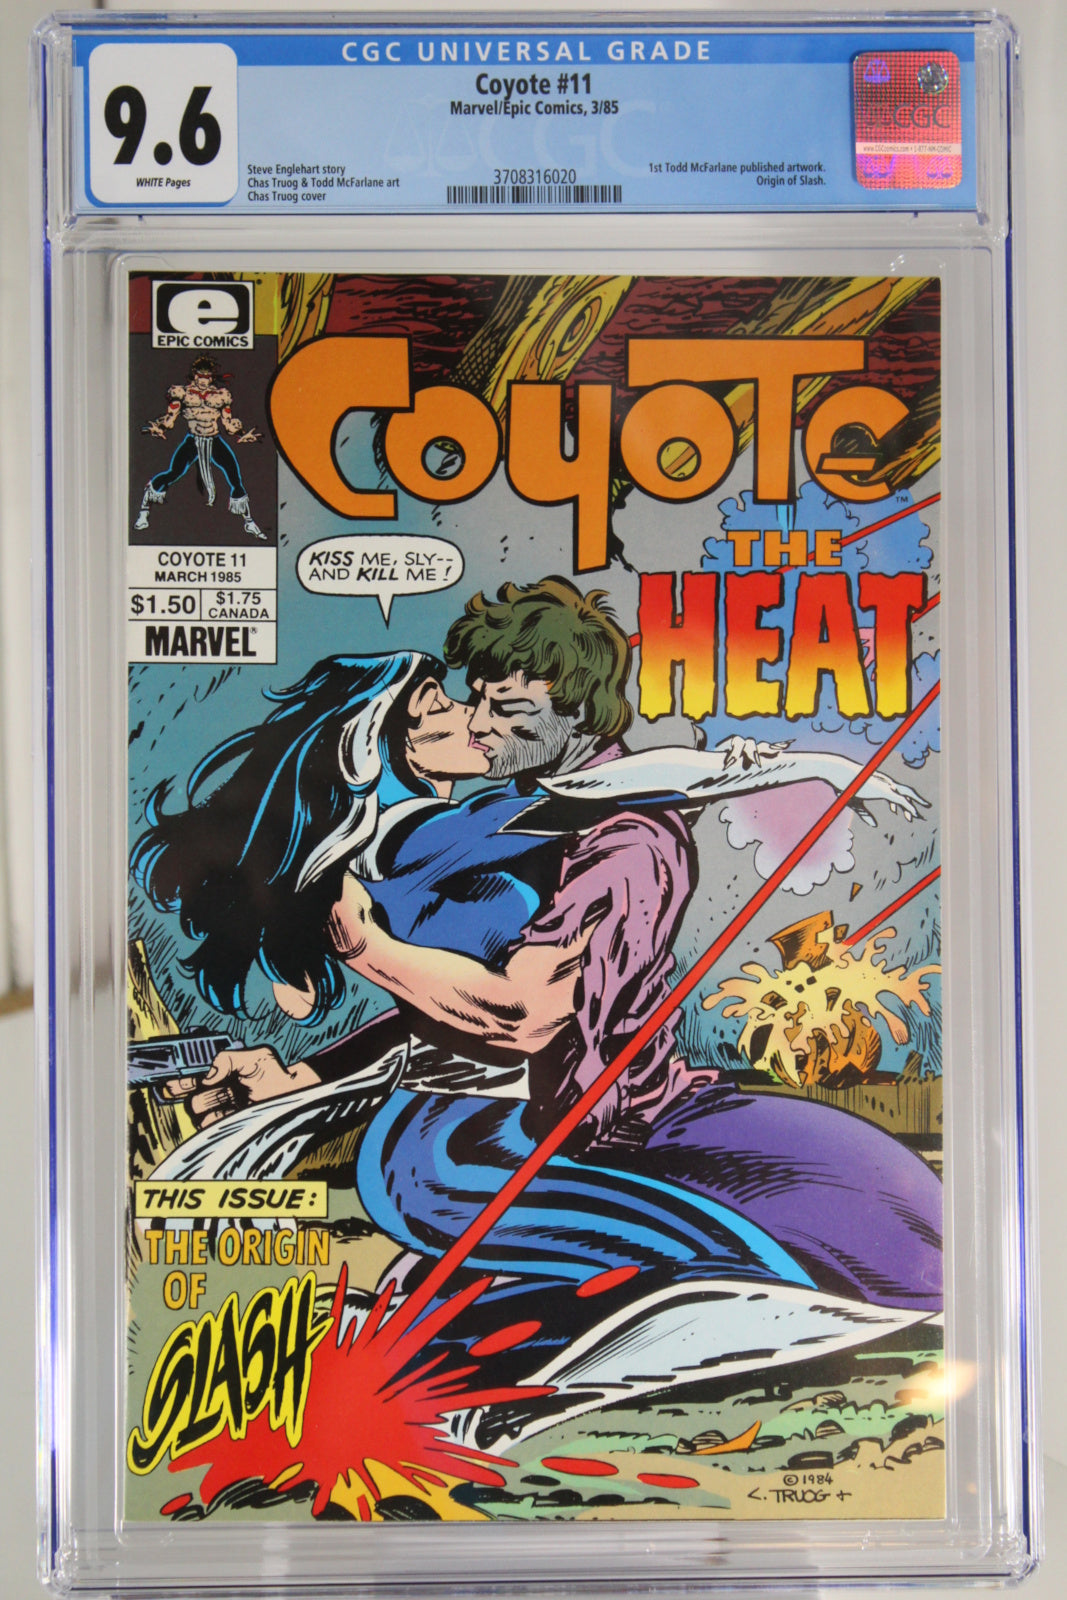 Coyote #11 CGC 9.6, White Pages